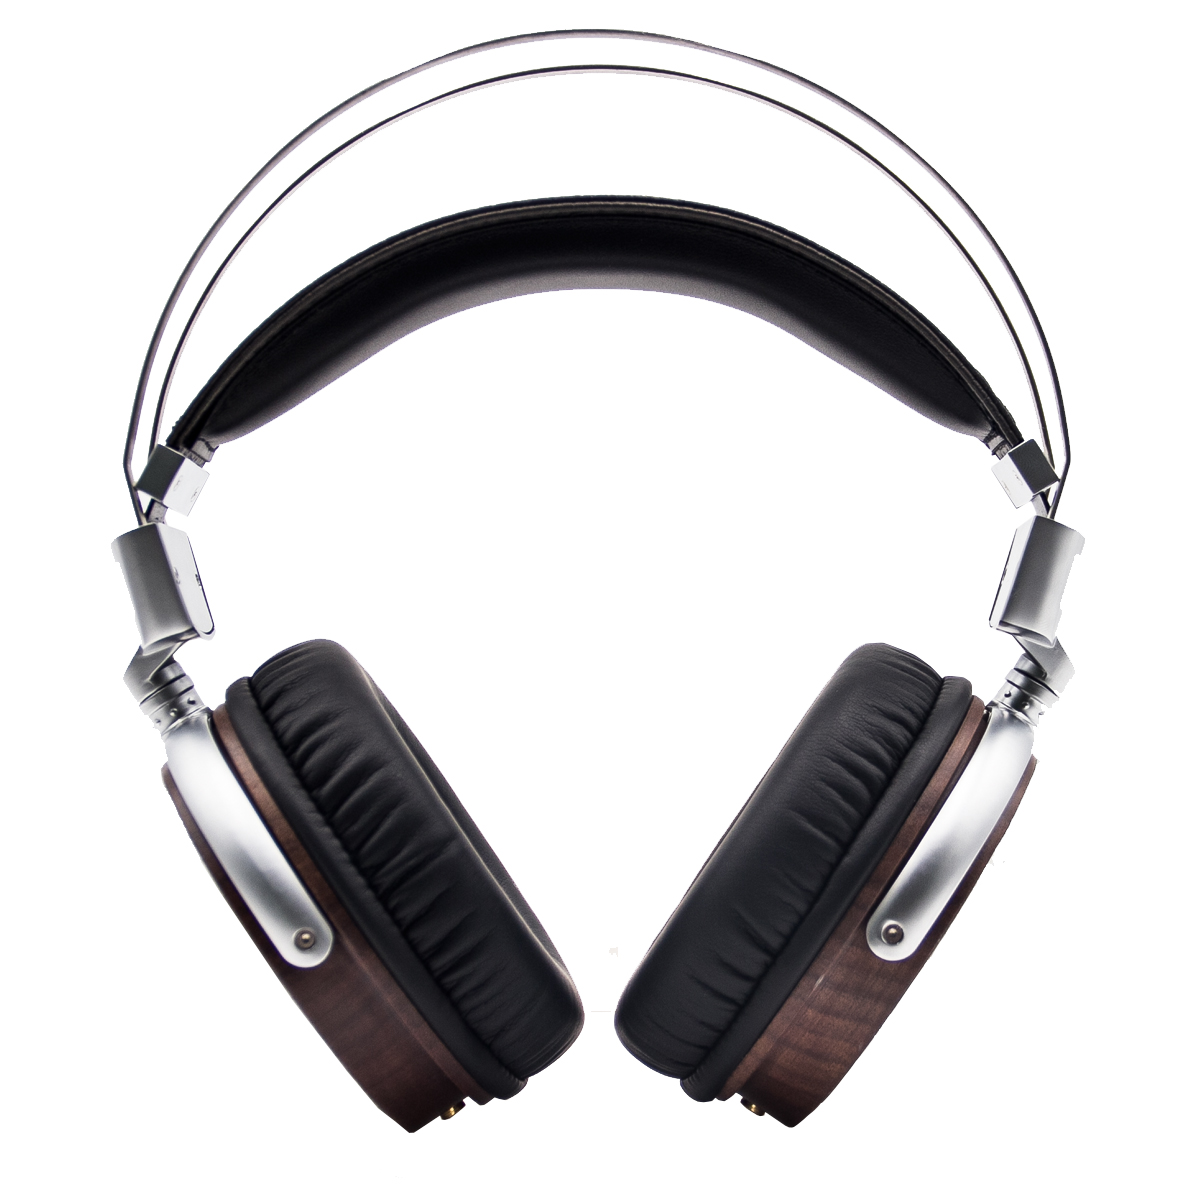 WHP860S Retro Trendy Head-mounted HIFI Walnut Alloy High-fidelity Mobile Computer Headset 2